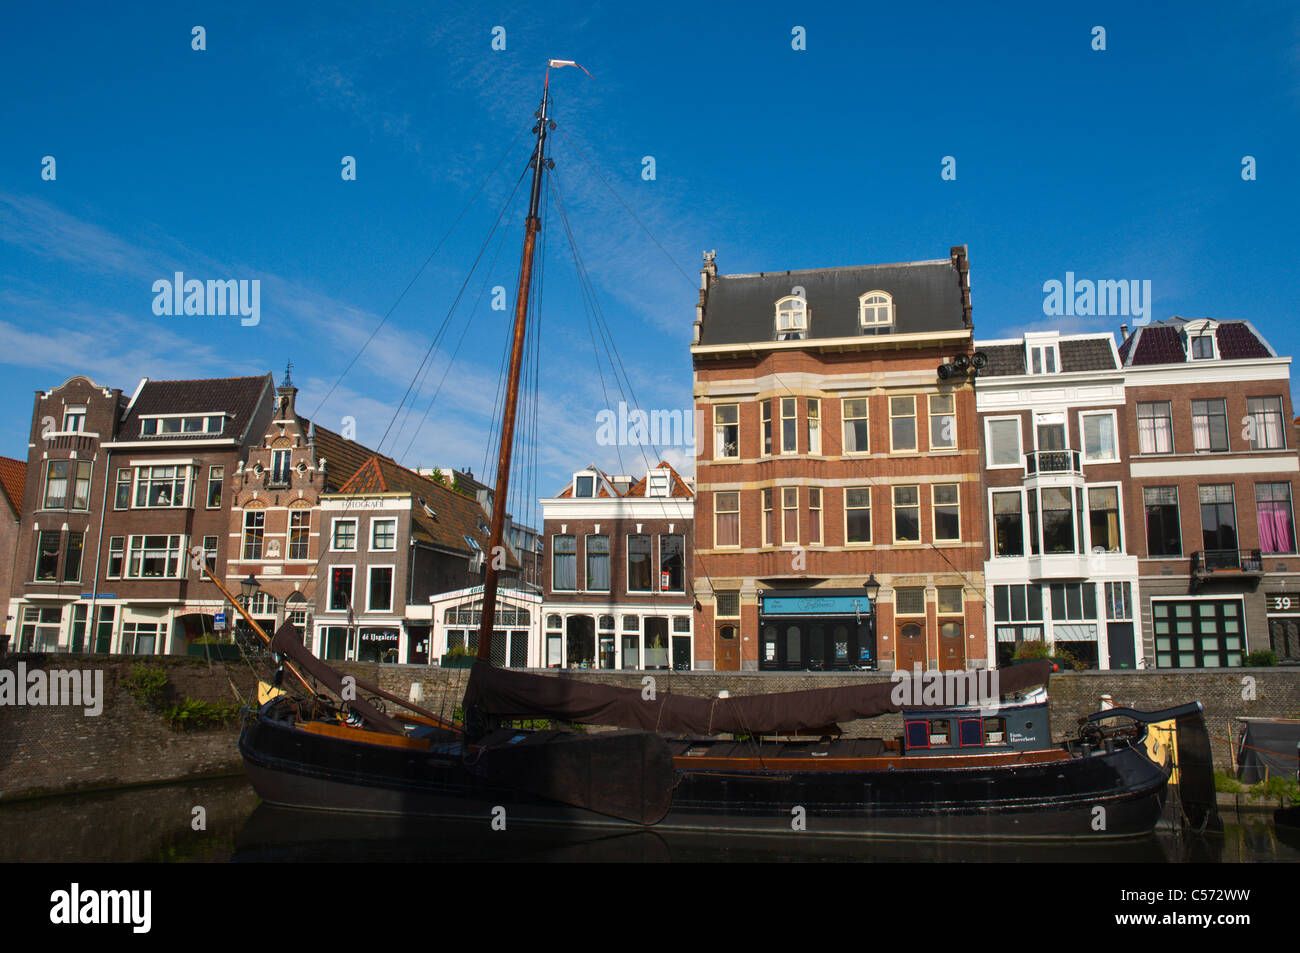 Voorhaven in Delfshaven district Rotterdam the province of South Holland the Netherlands Europe Stock Photo